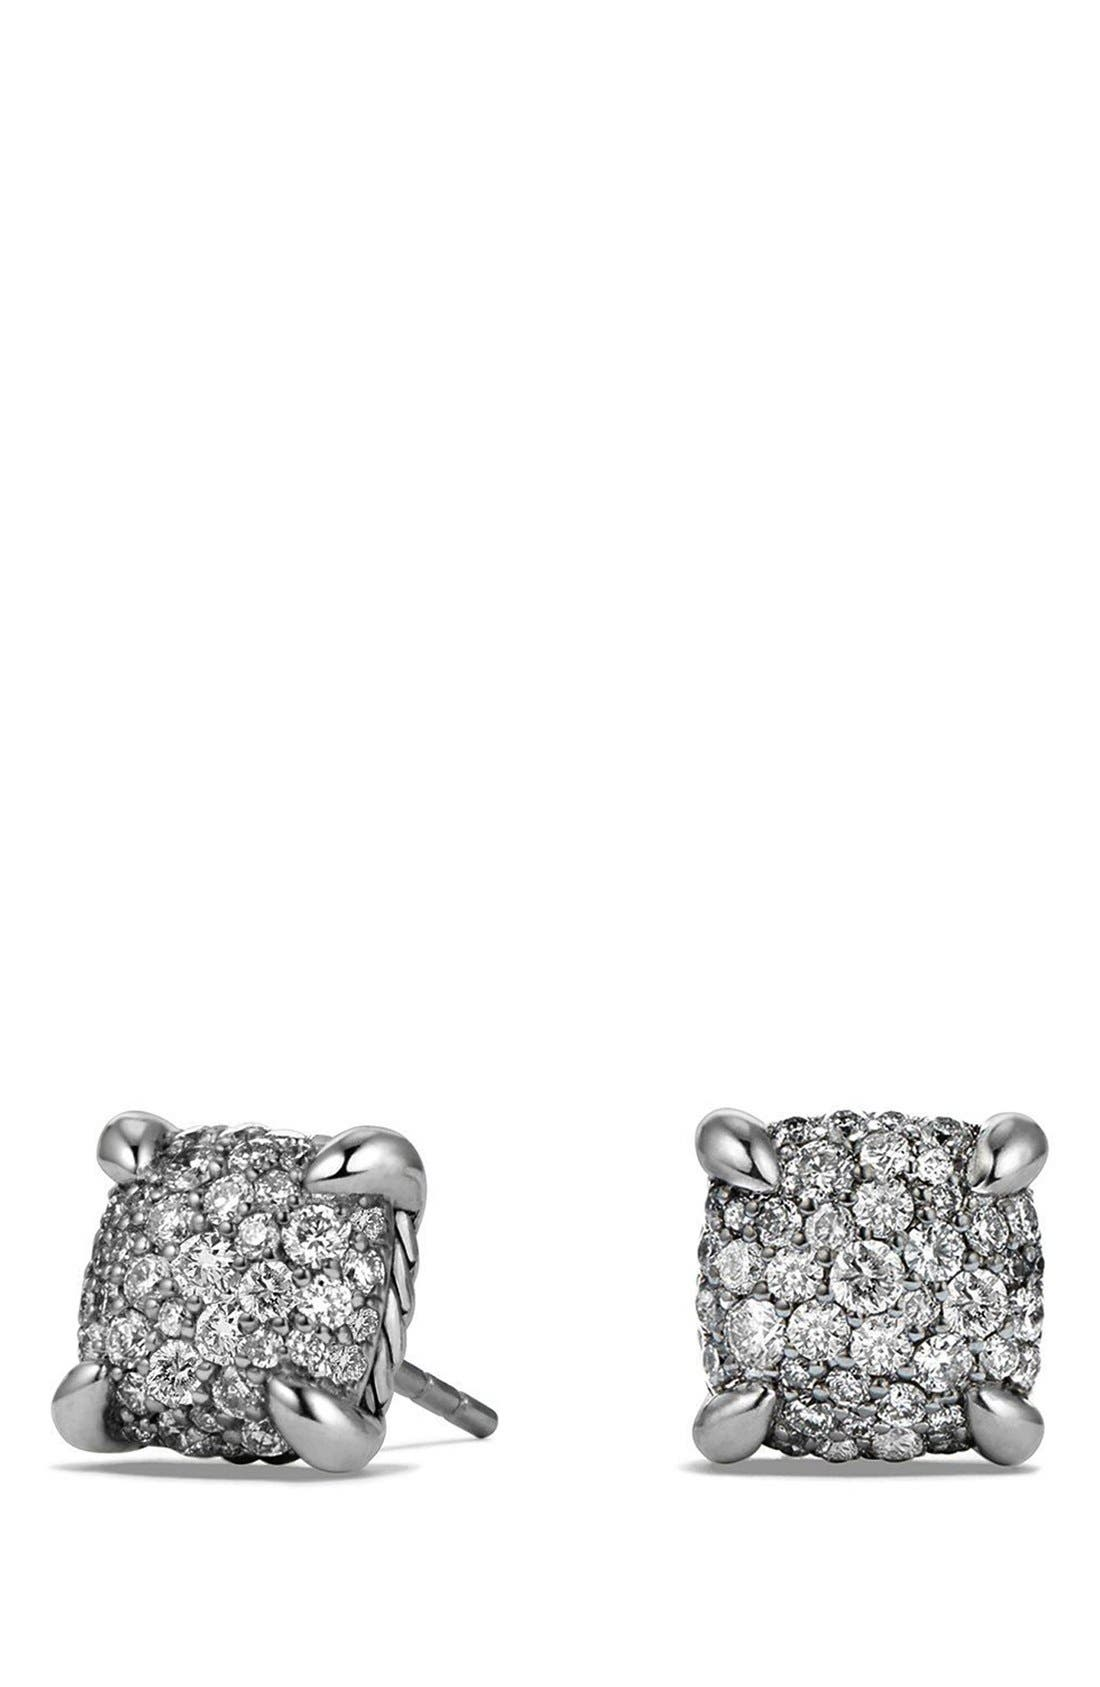 'Châtelaine' Earrings with Diamonds,                         Main,                         color, Silver